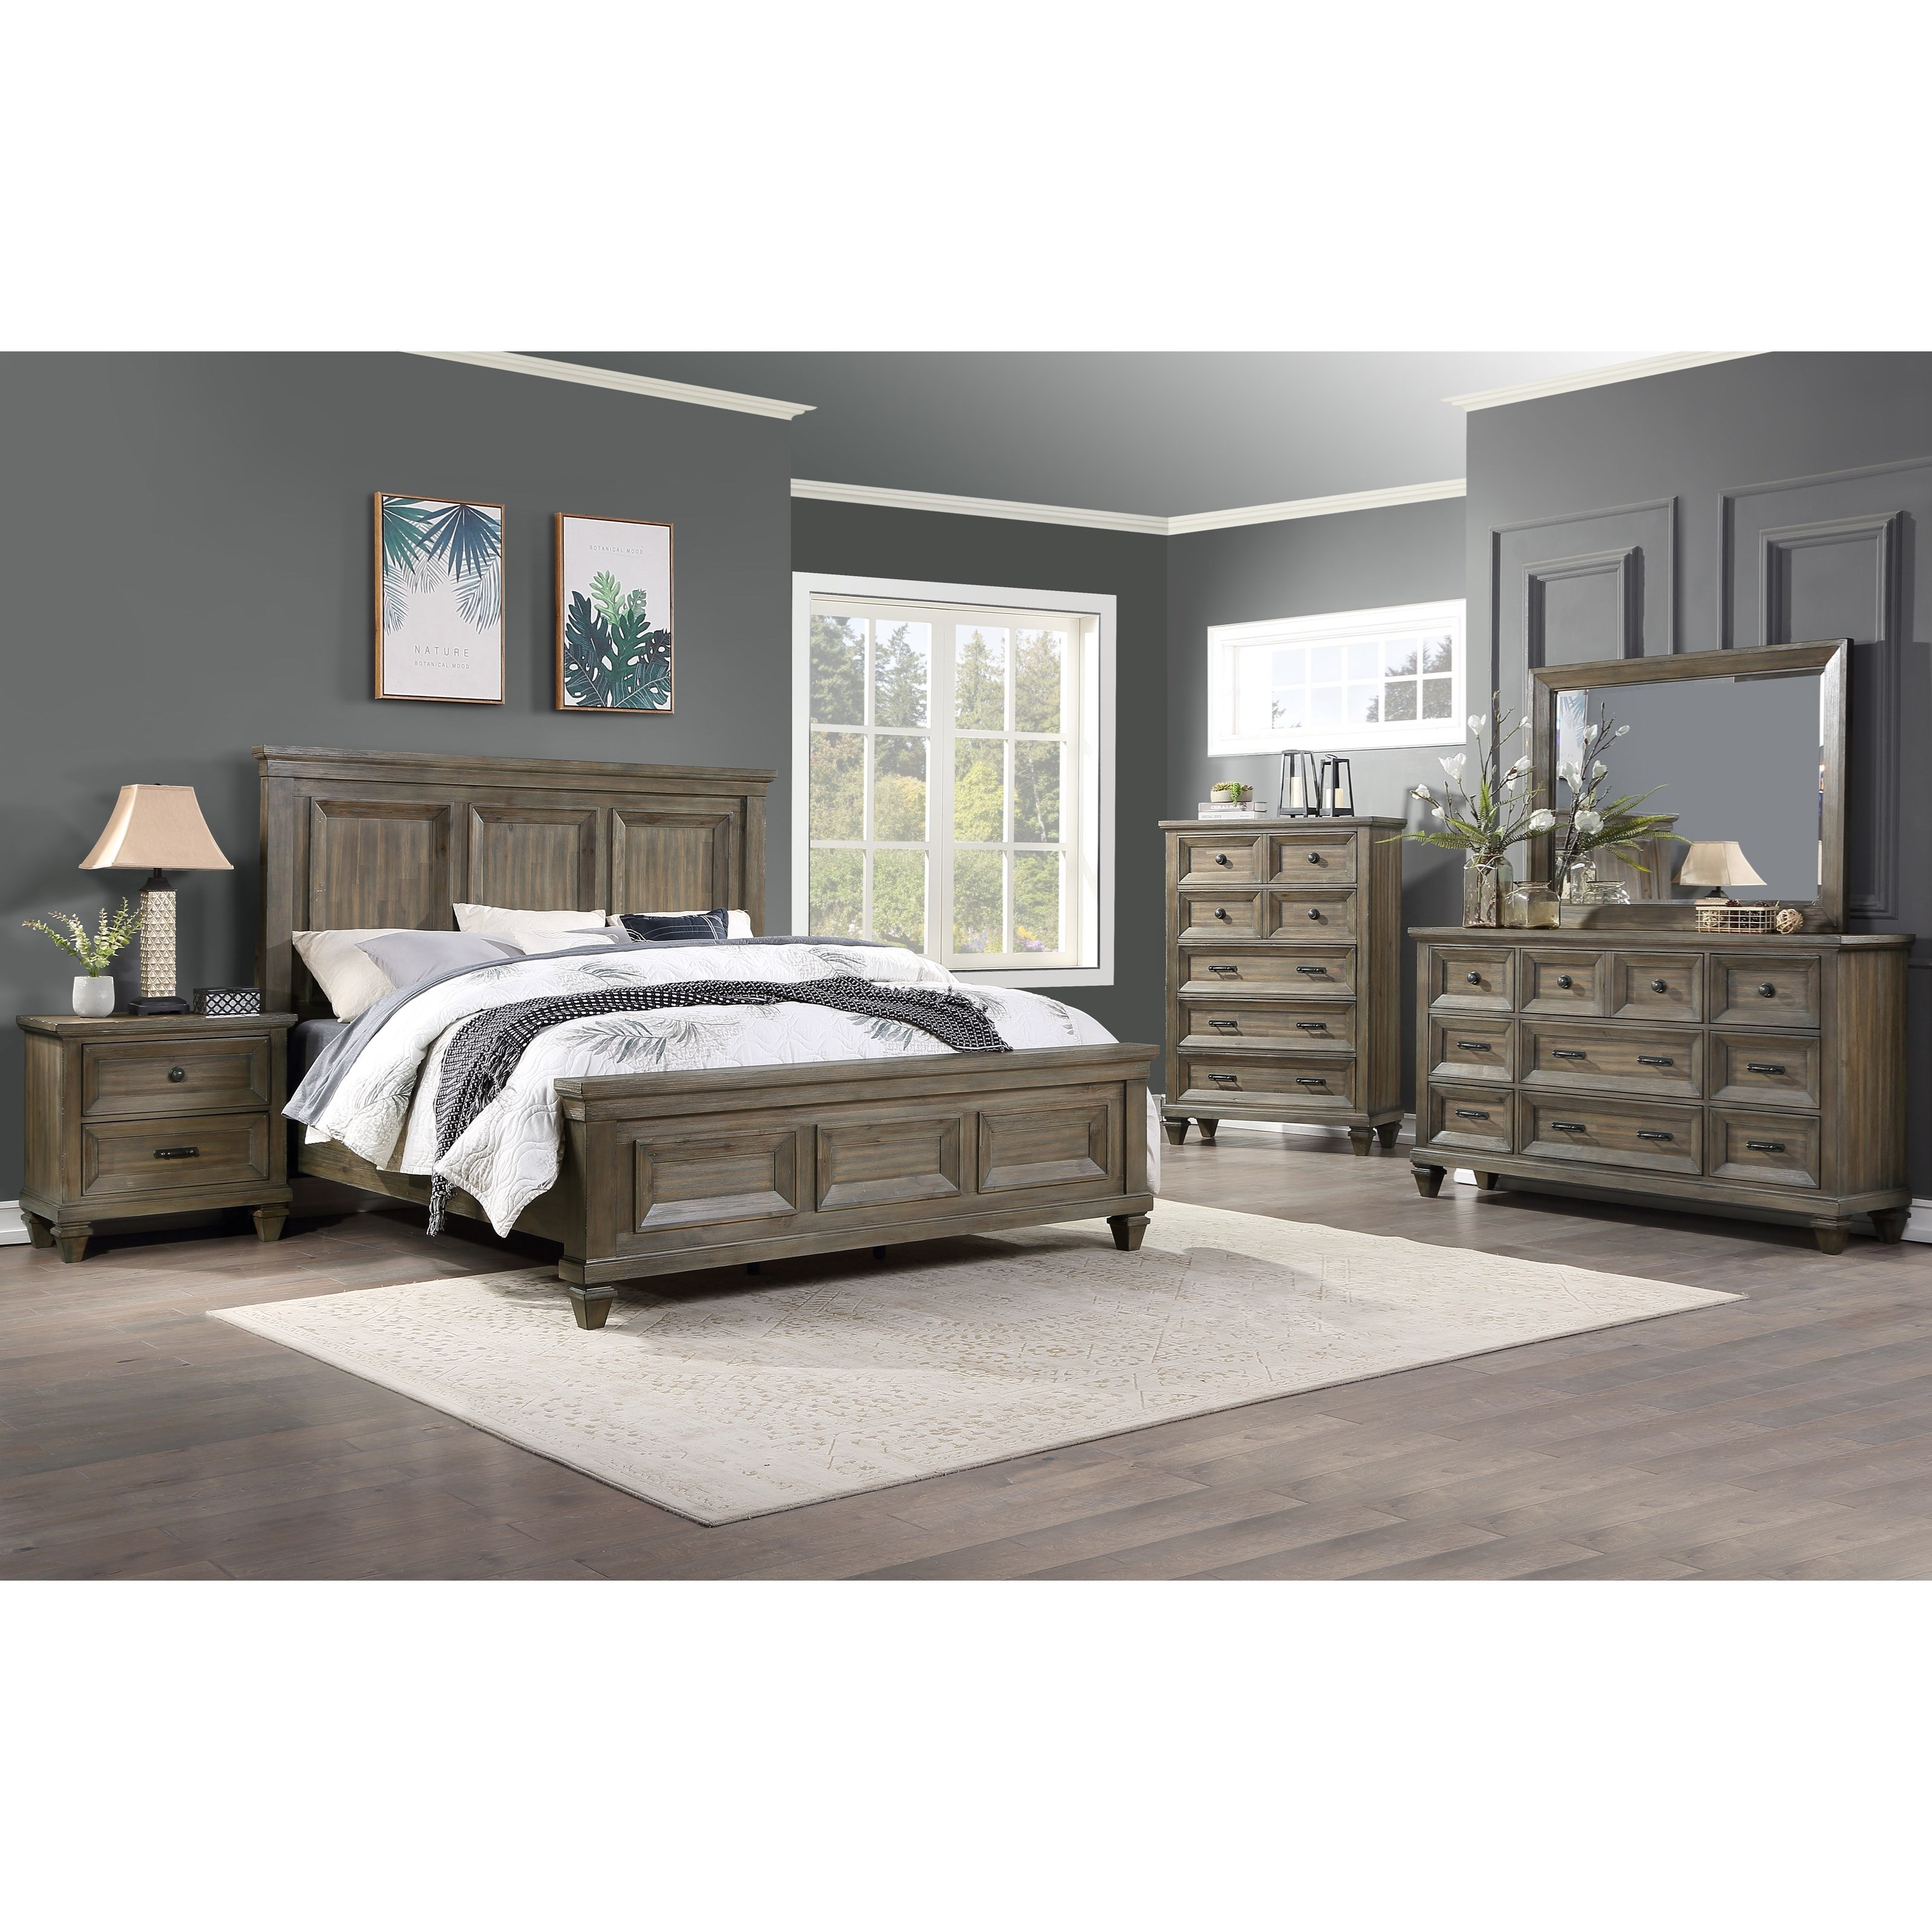 Sevilla  California King Bedroom Group by New Classic at Rife's Home Furniture